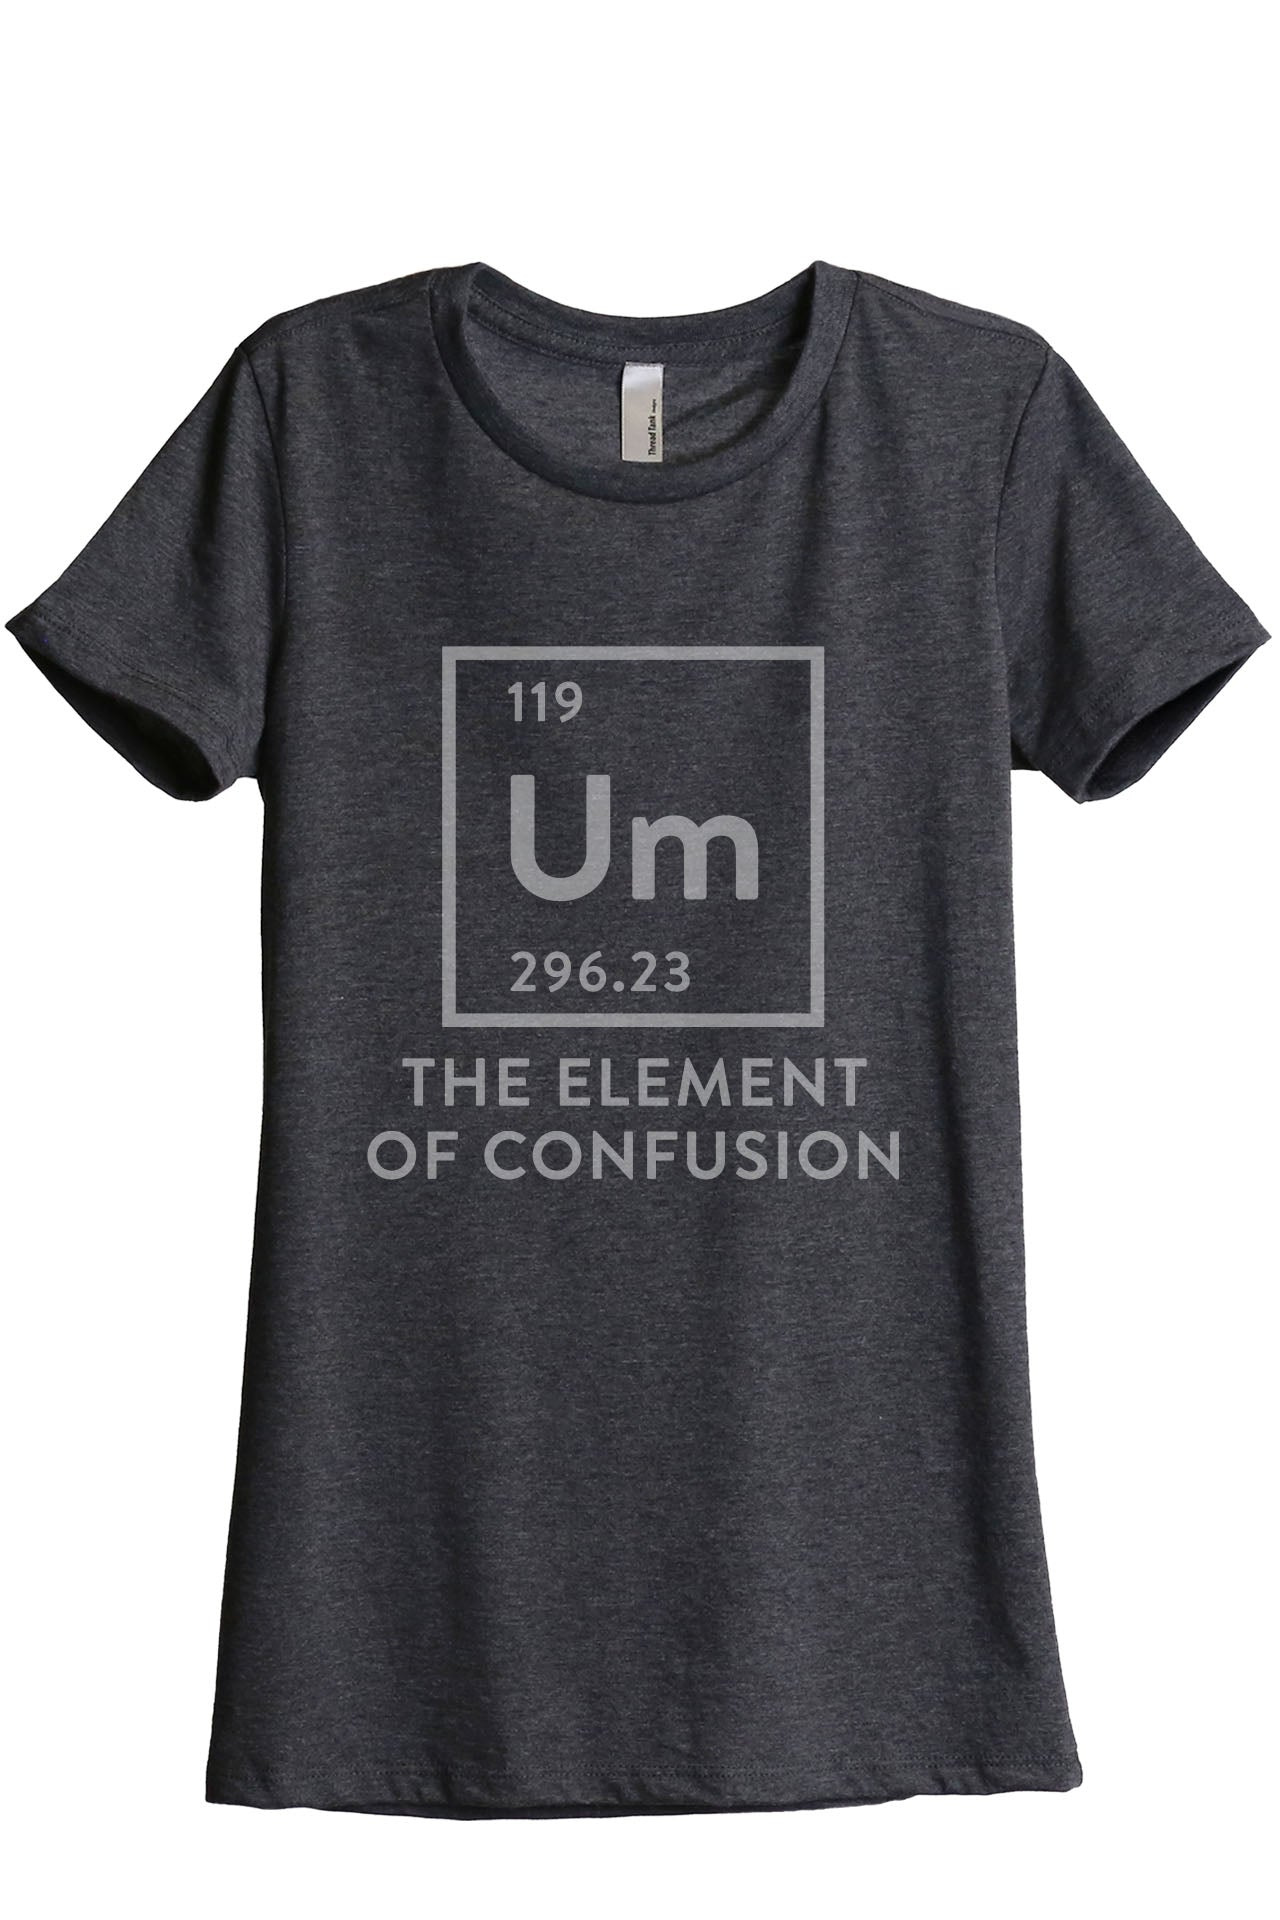 Um Element Of Confusion Women's Relaxed Crewneck T-Shirt Top Tee Charcoal Grey